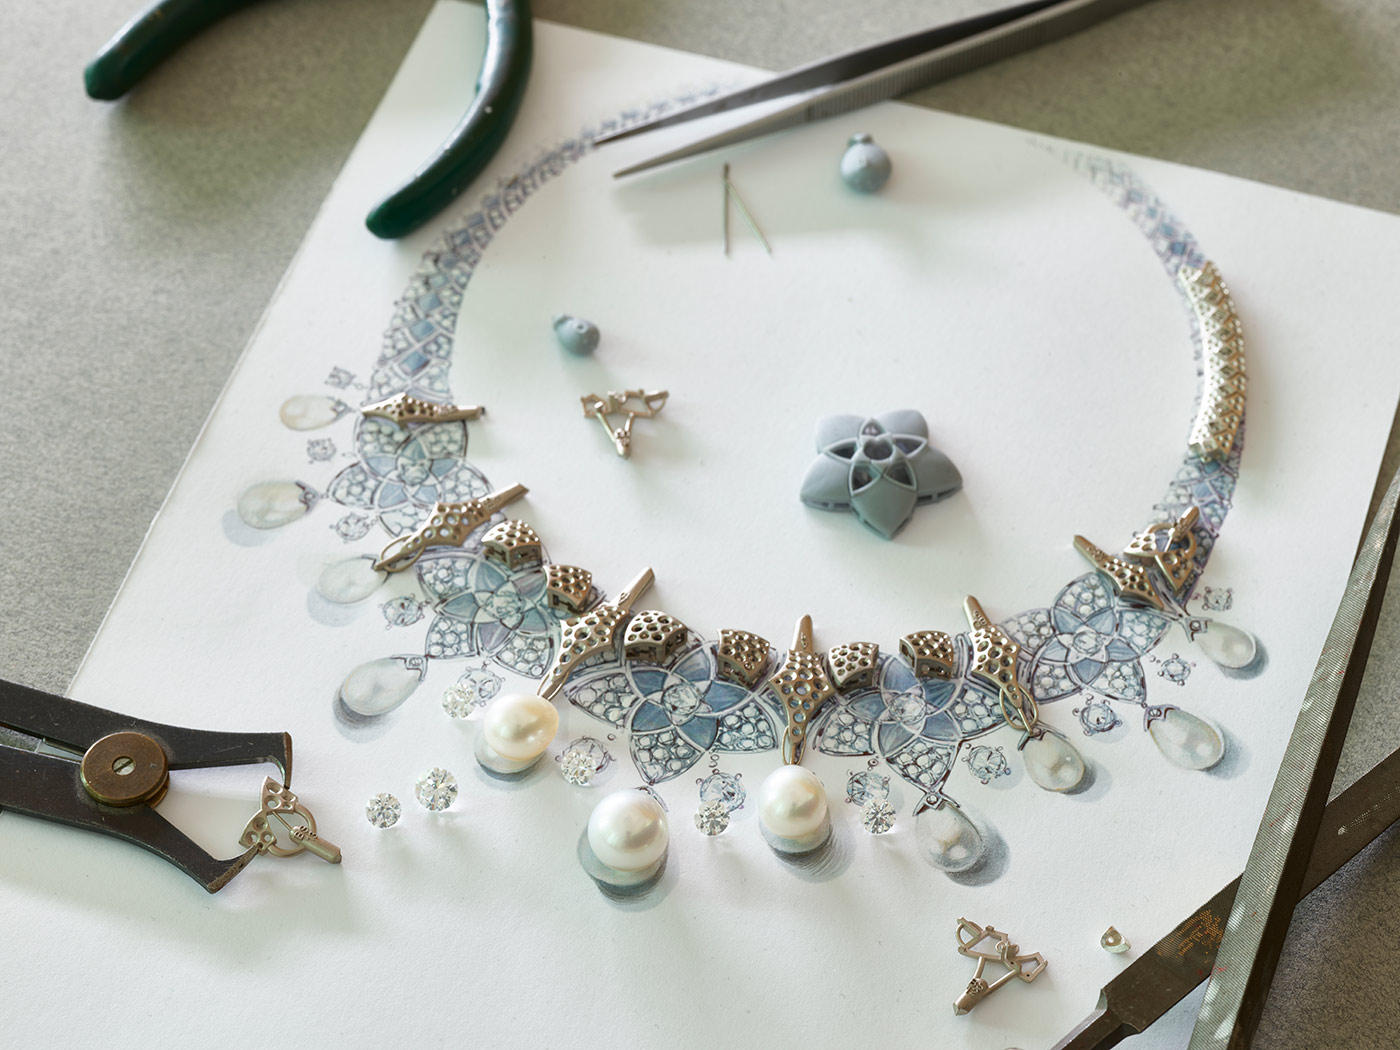 The making of the Bvlgari Jannah collection